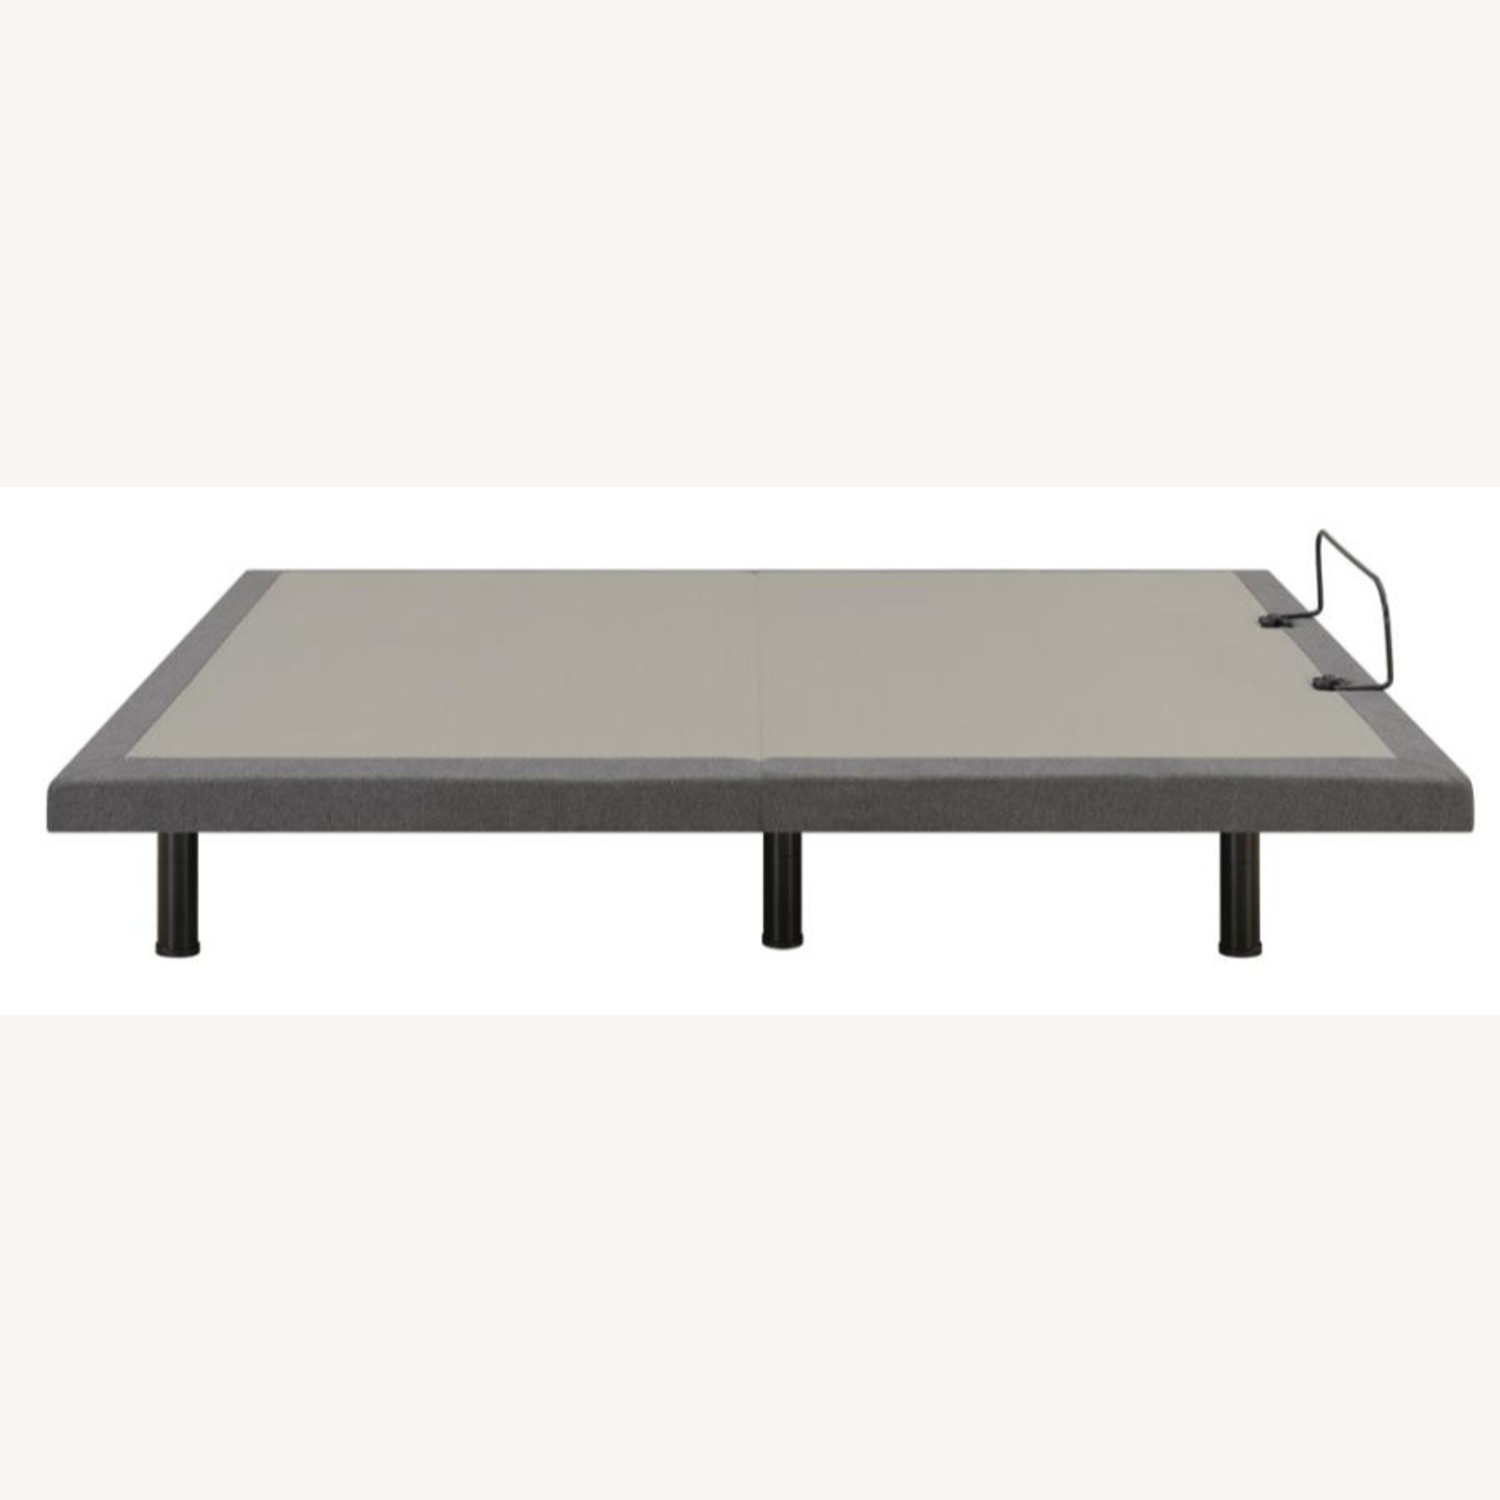 Queen Adjustable Bed Base In Grey Fabric Finish - image-7